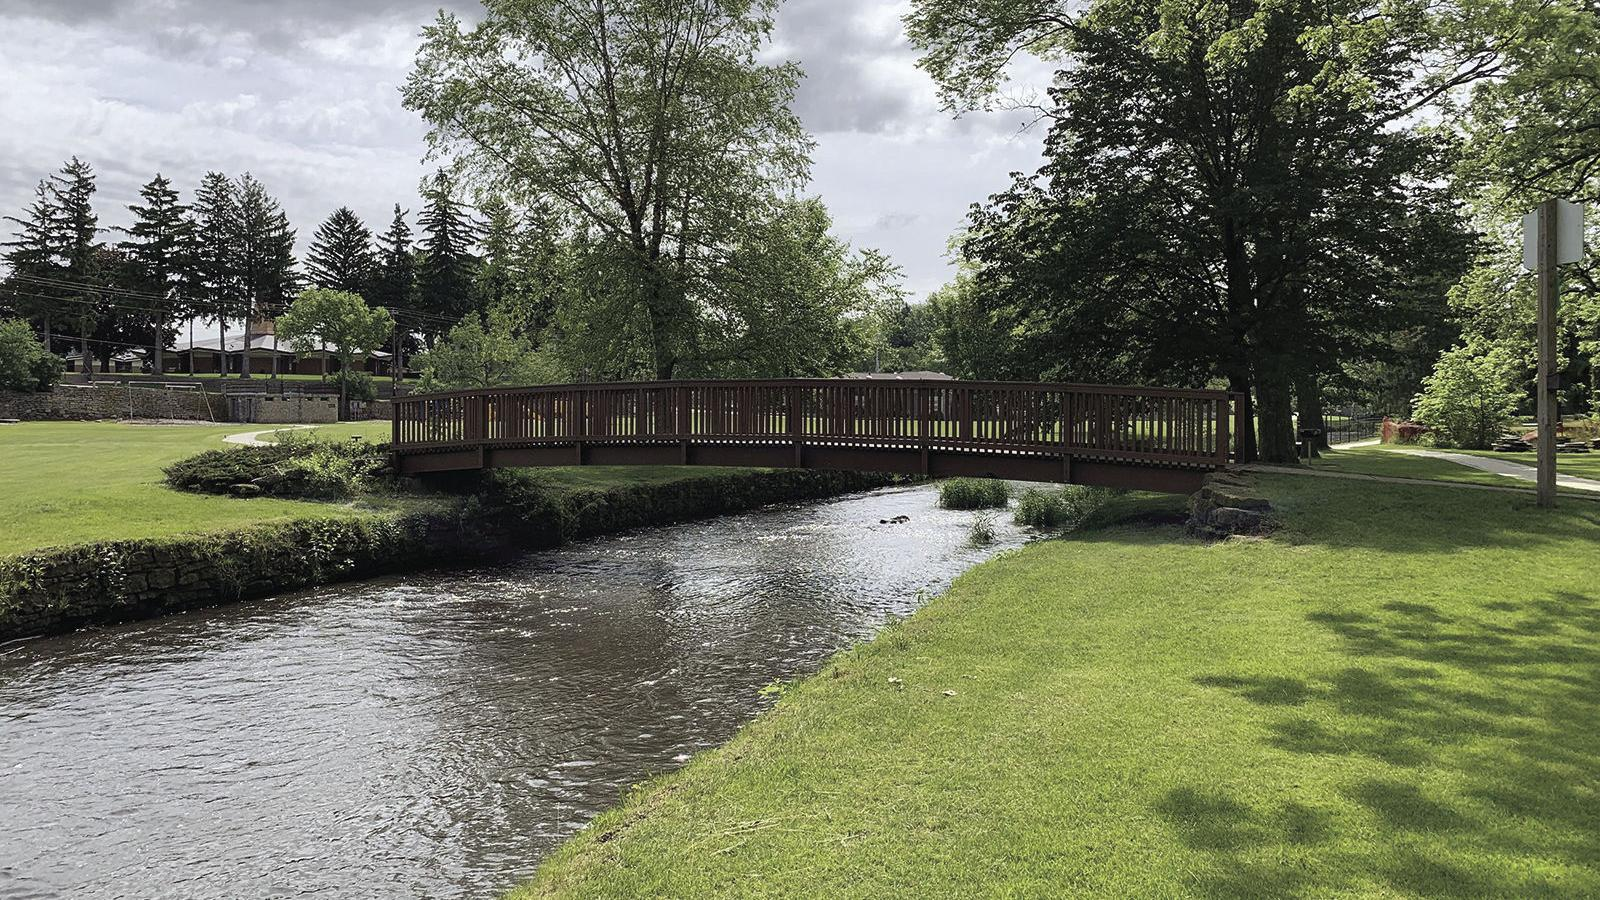 Committee interested in finding ways to restore Spring Creek, surrounding areas